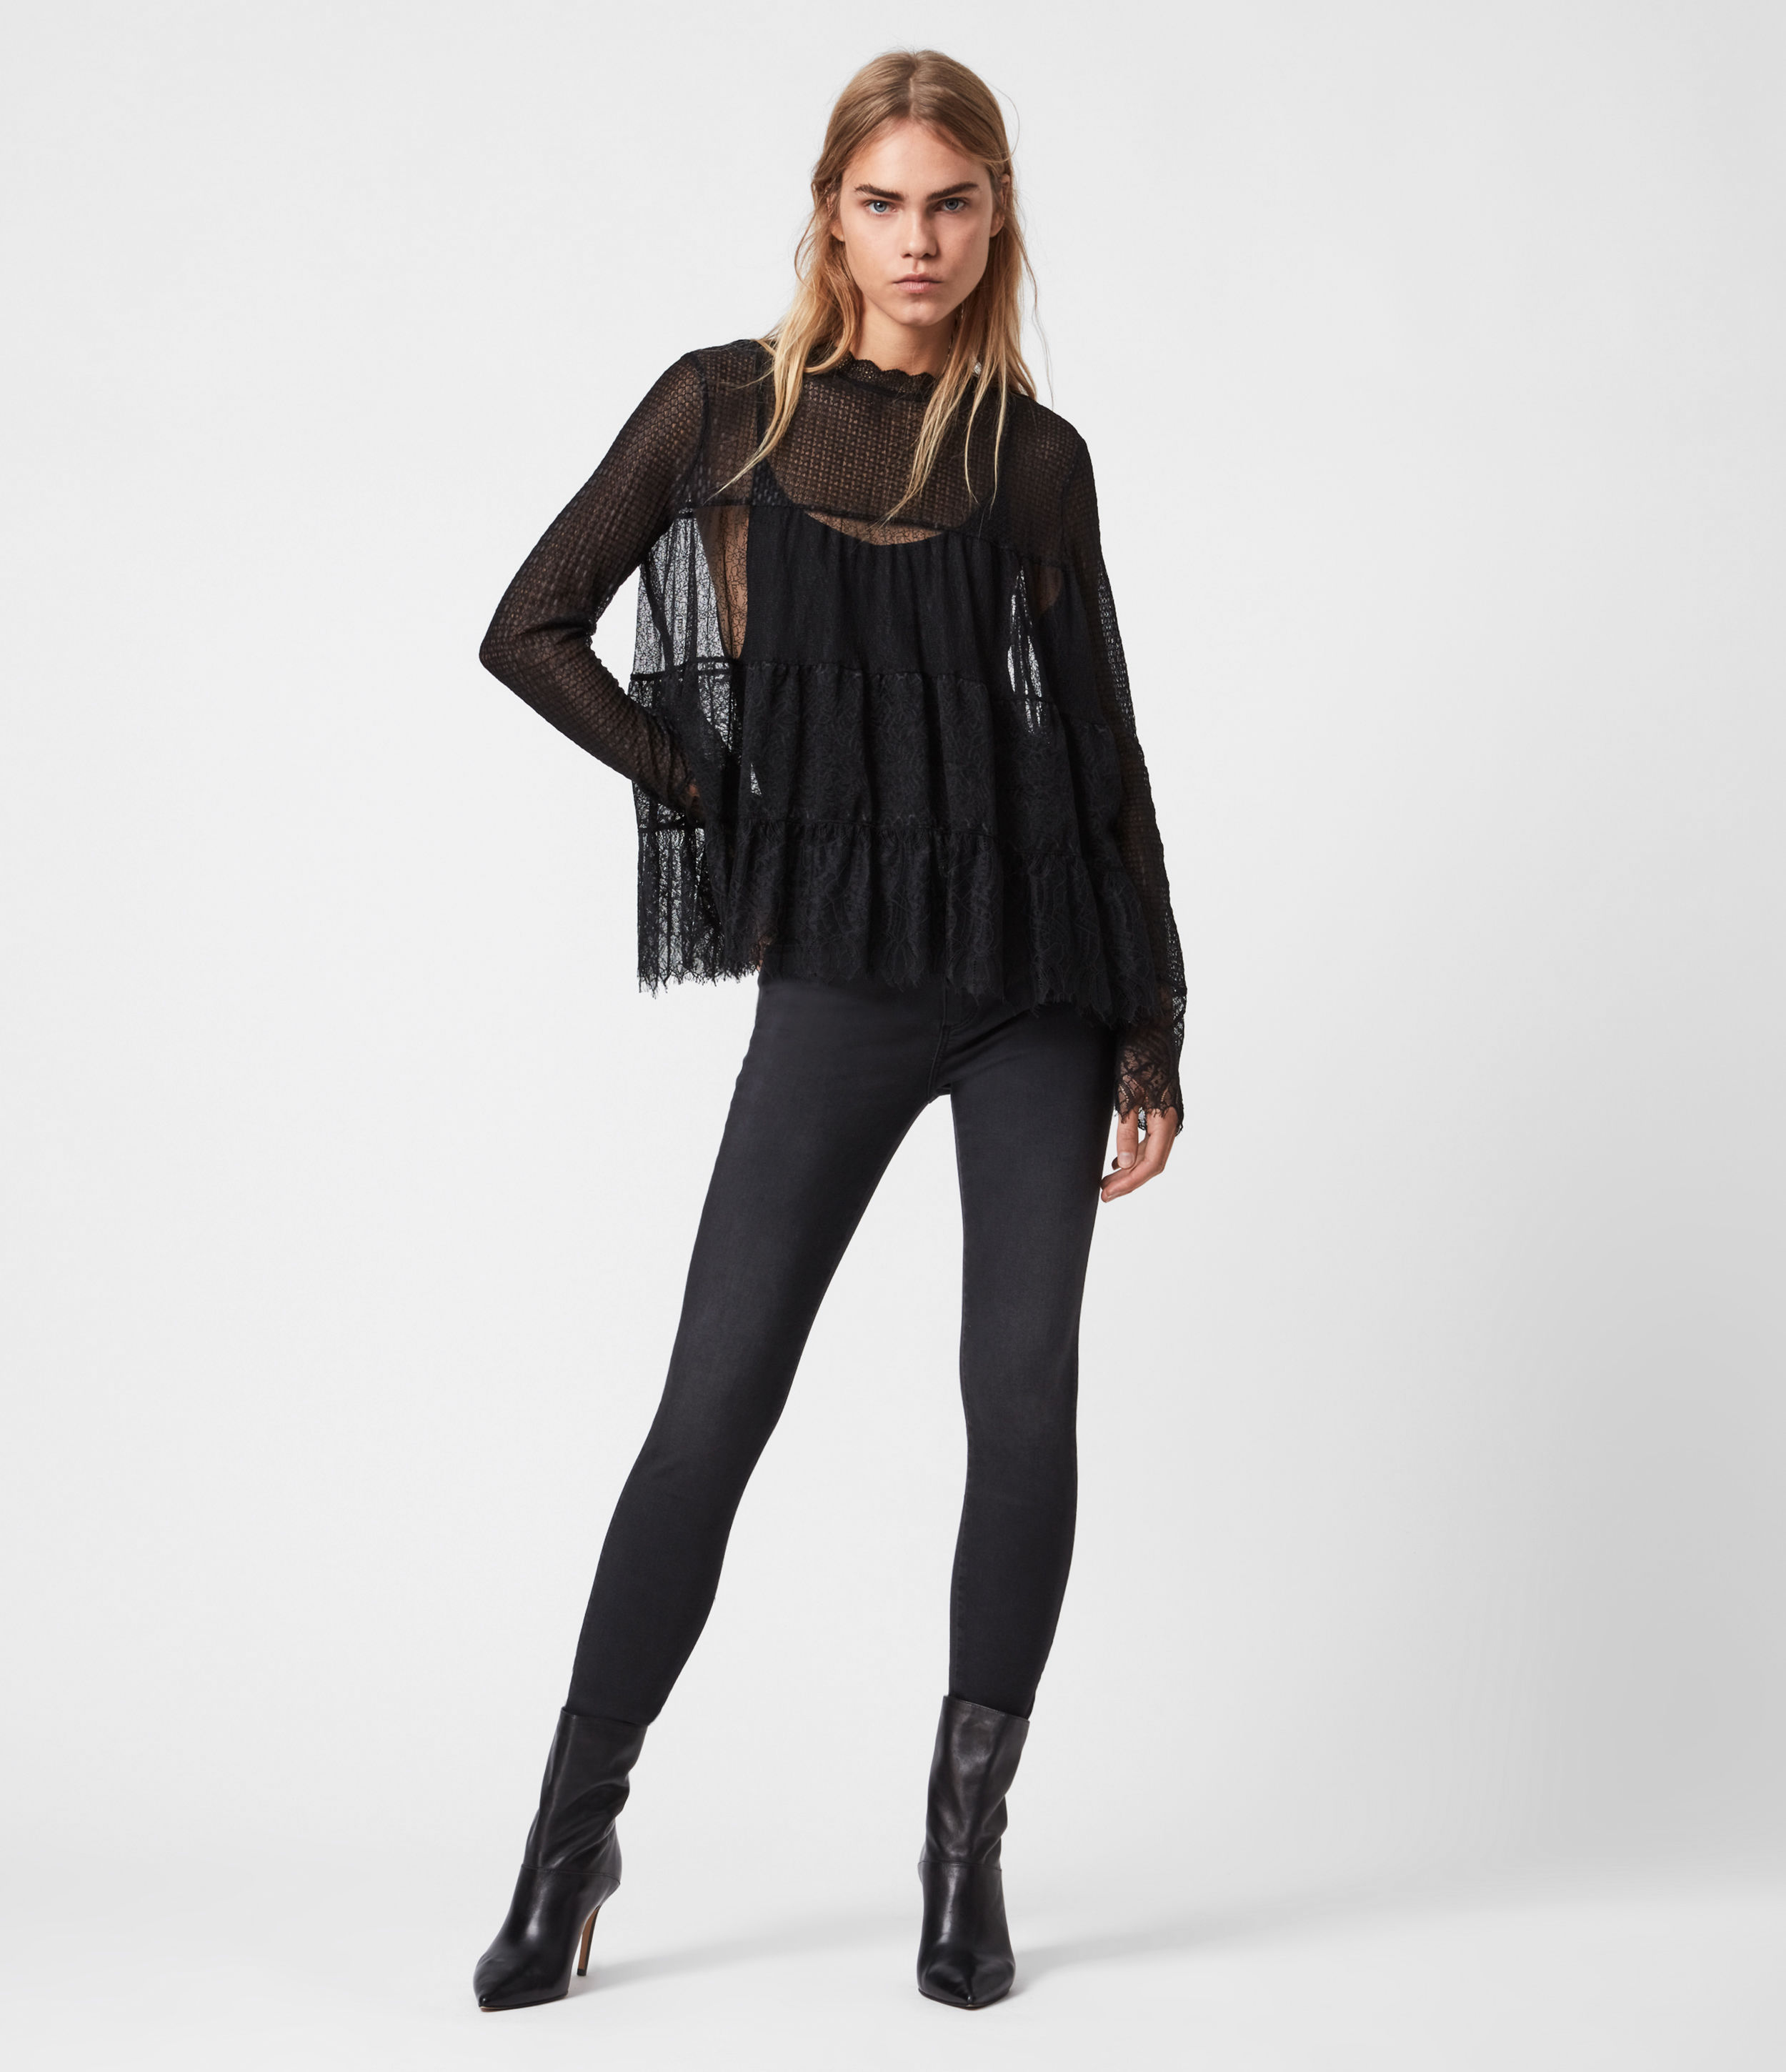 AllSaints Briella Lace Top